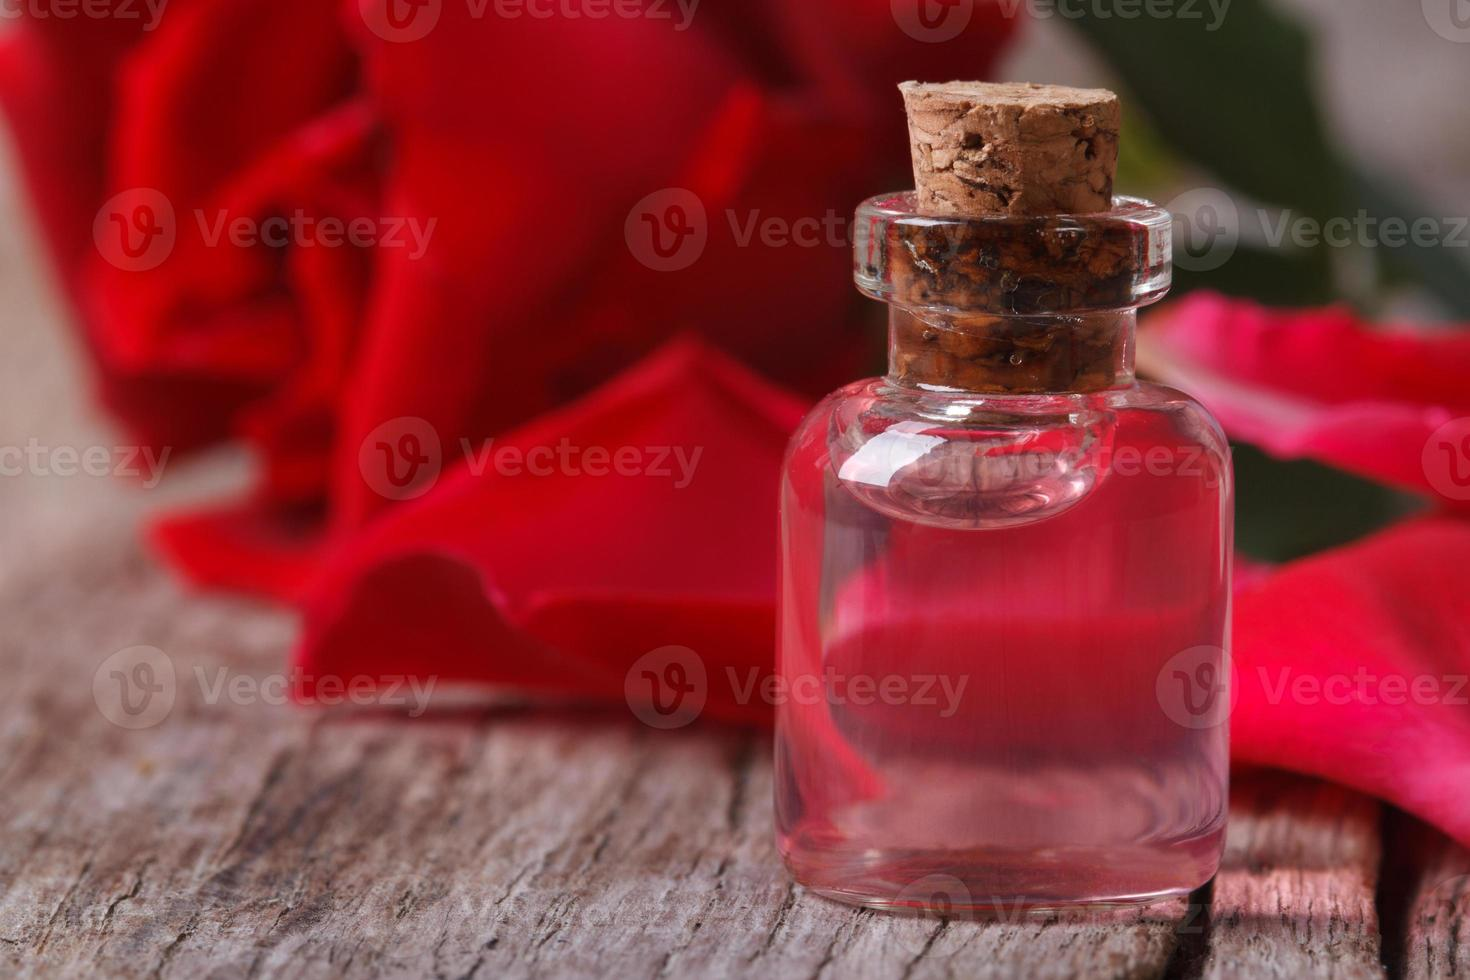 perfumed rose water in a bottle on a wooden close-up photo